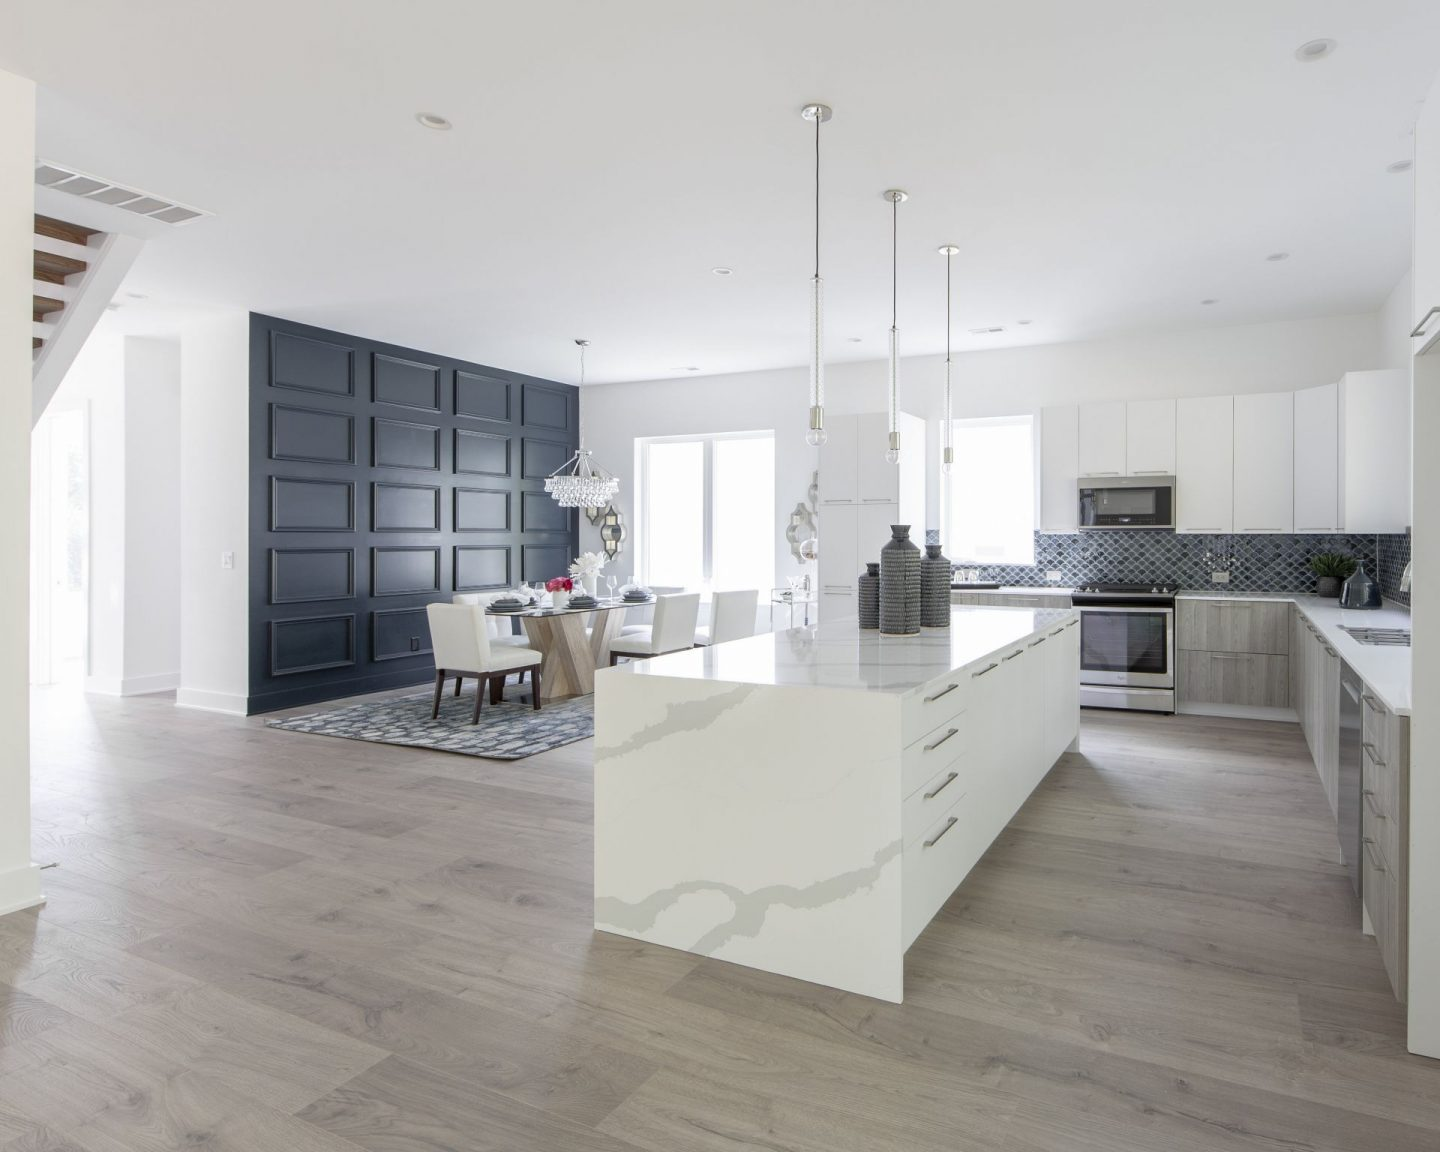 Kale Mills - Contemporary Homes - Charlotte, NC - Chelsea Building Group - Schwaiger Realty Group